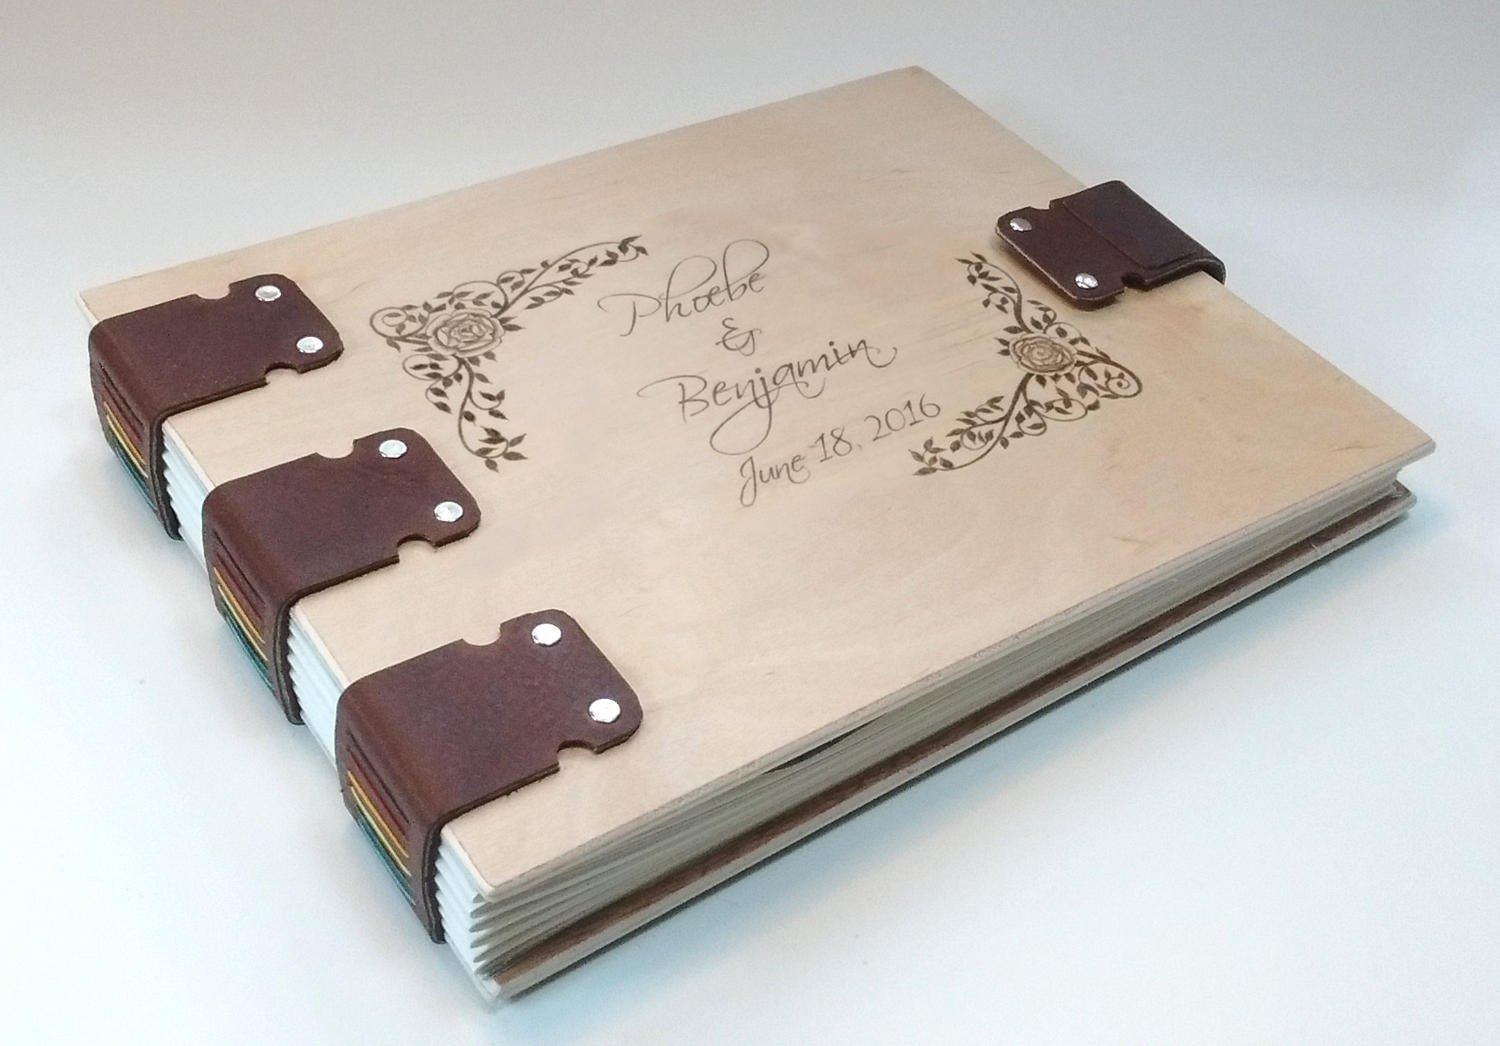 Personalized wedding album, guest register, guest book, photo album, hand-bound in wood and leather, with names and/or decorations engraved on the cover